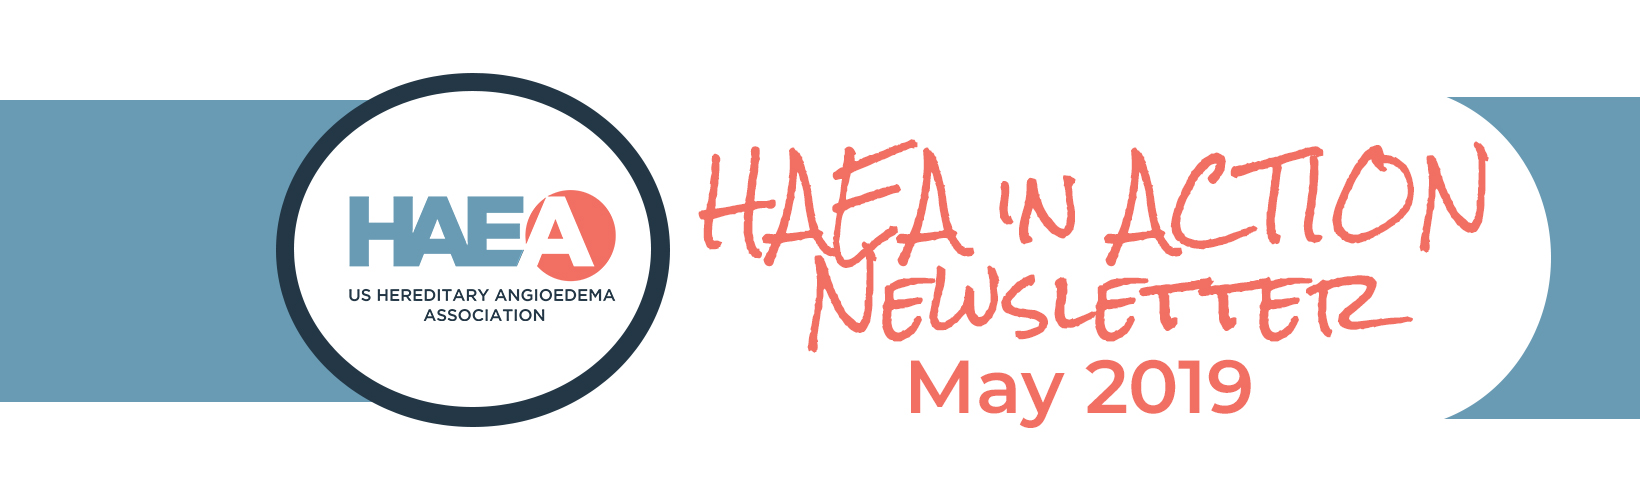 HAEA in Action May 2019 Newsletter